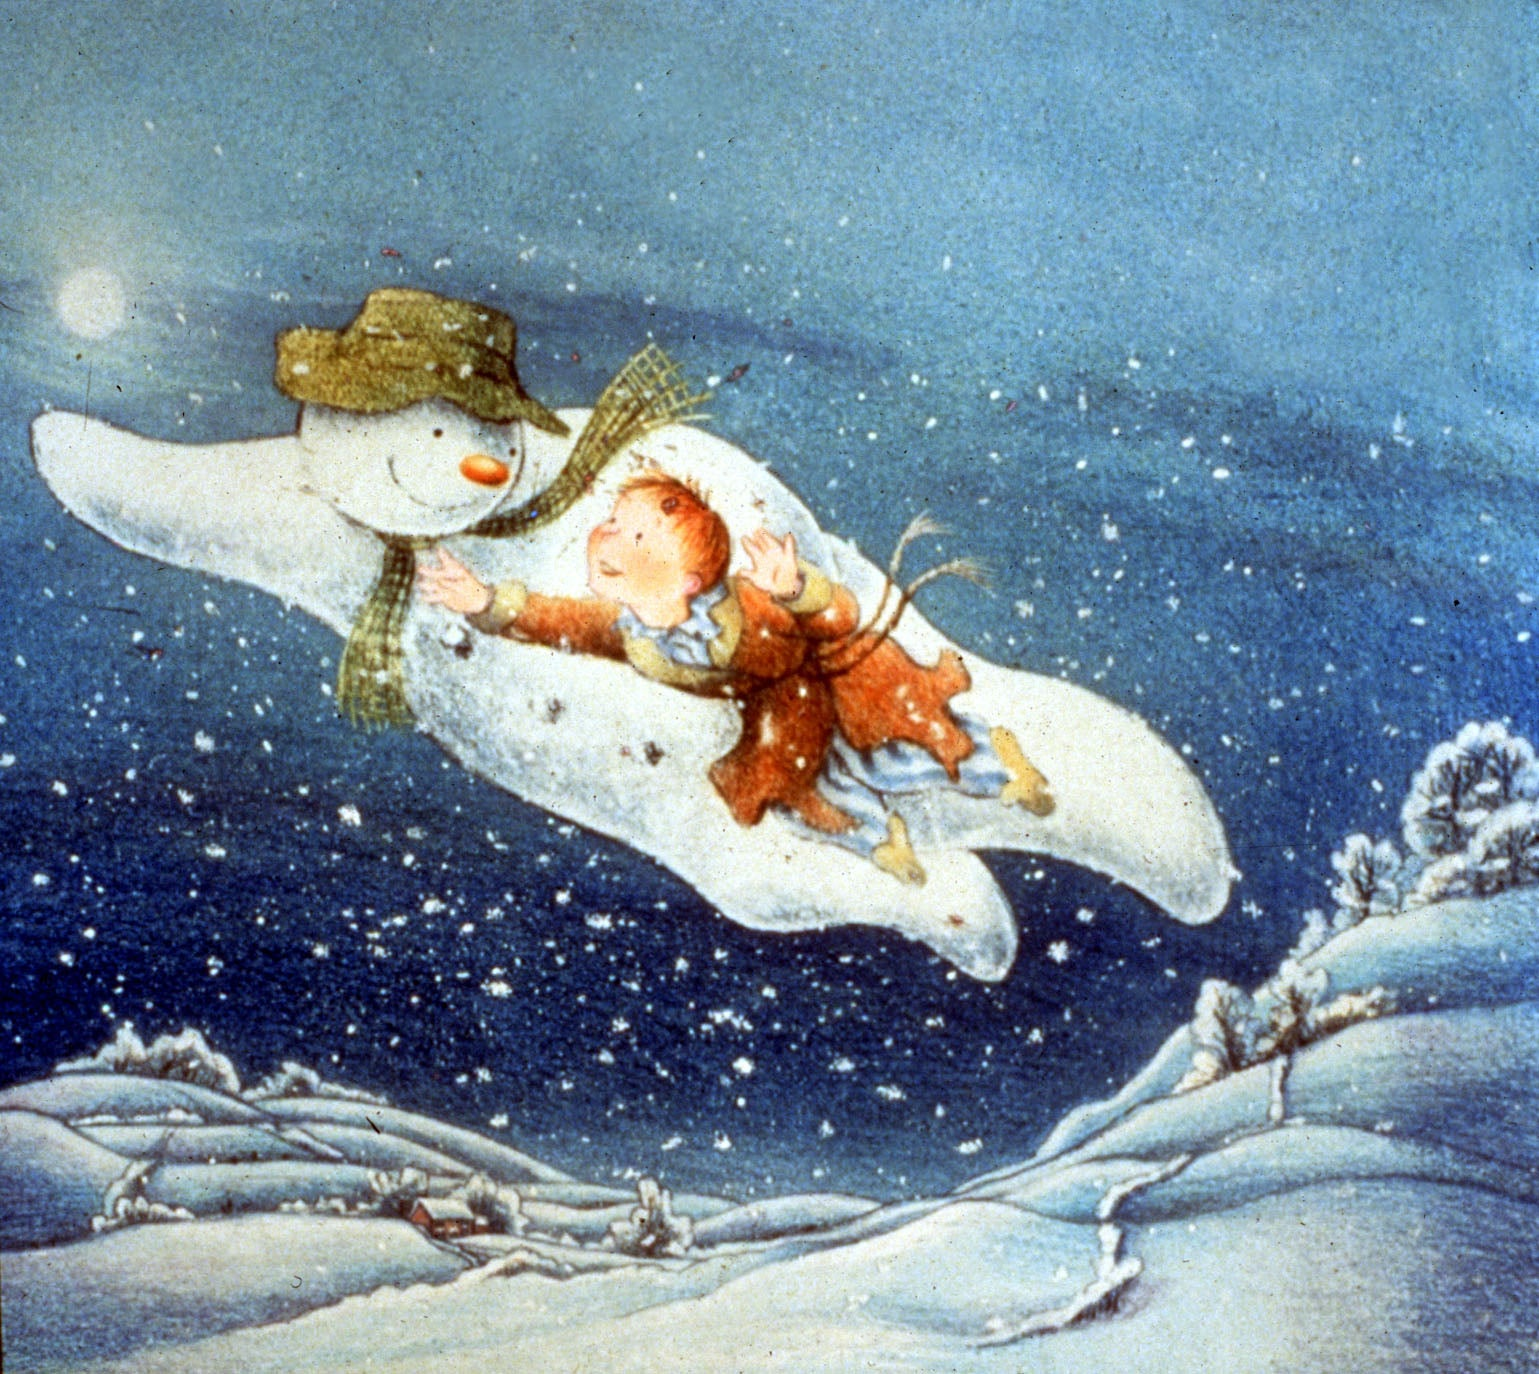 Snowman and boy flying together at night. From The Snowman (1982).